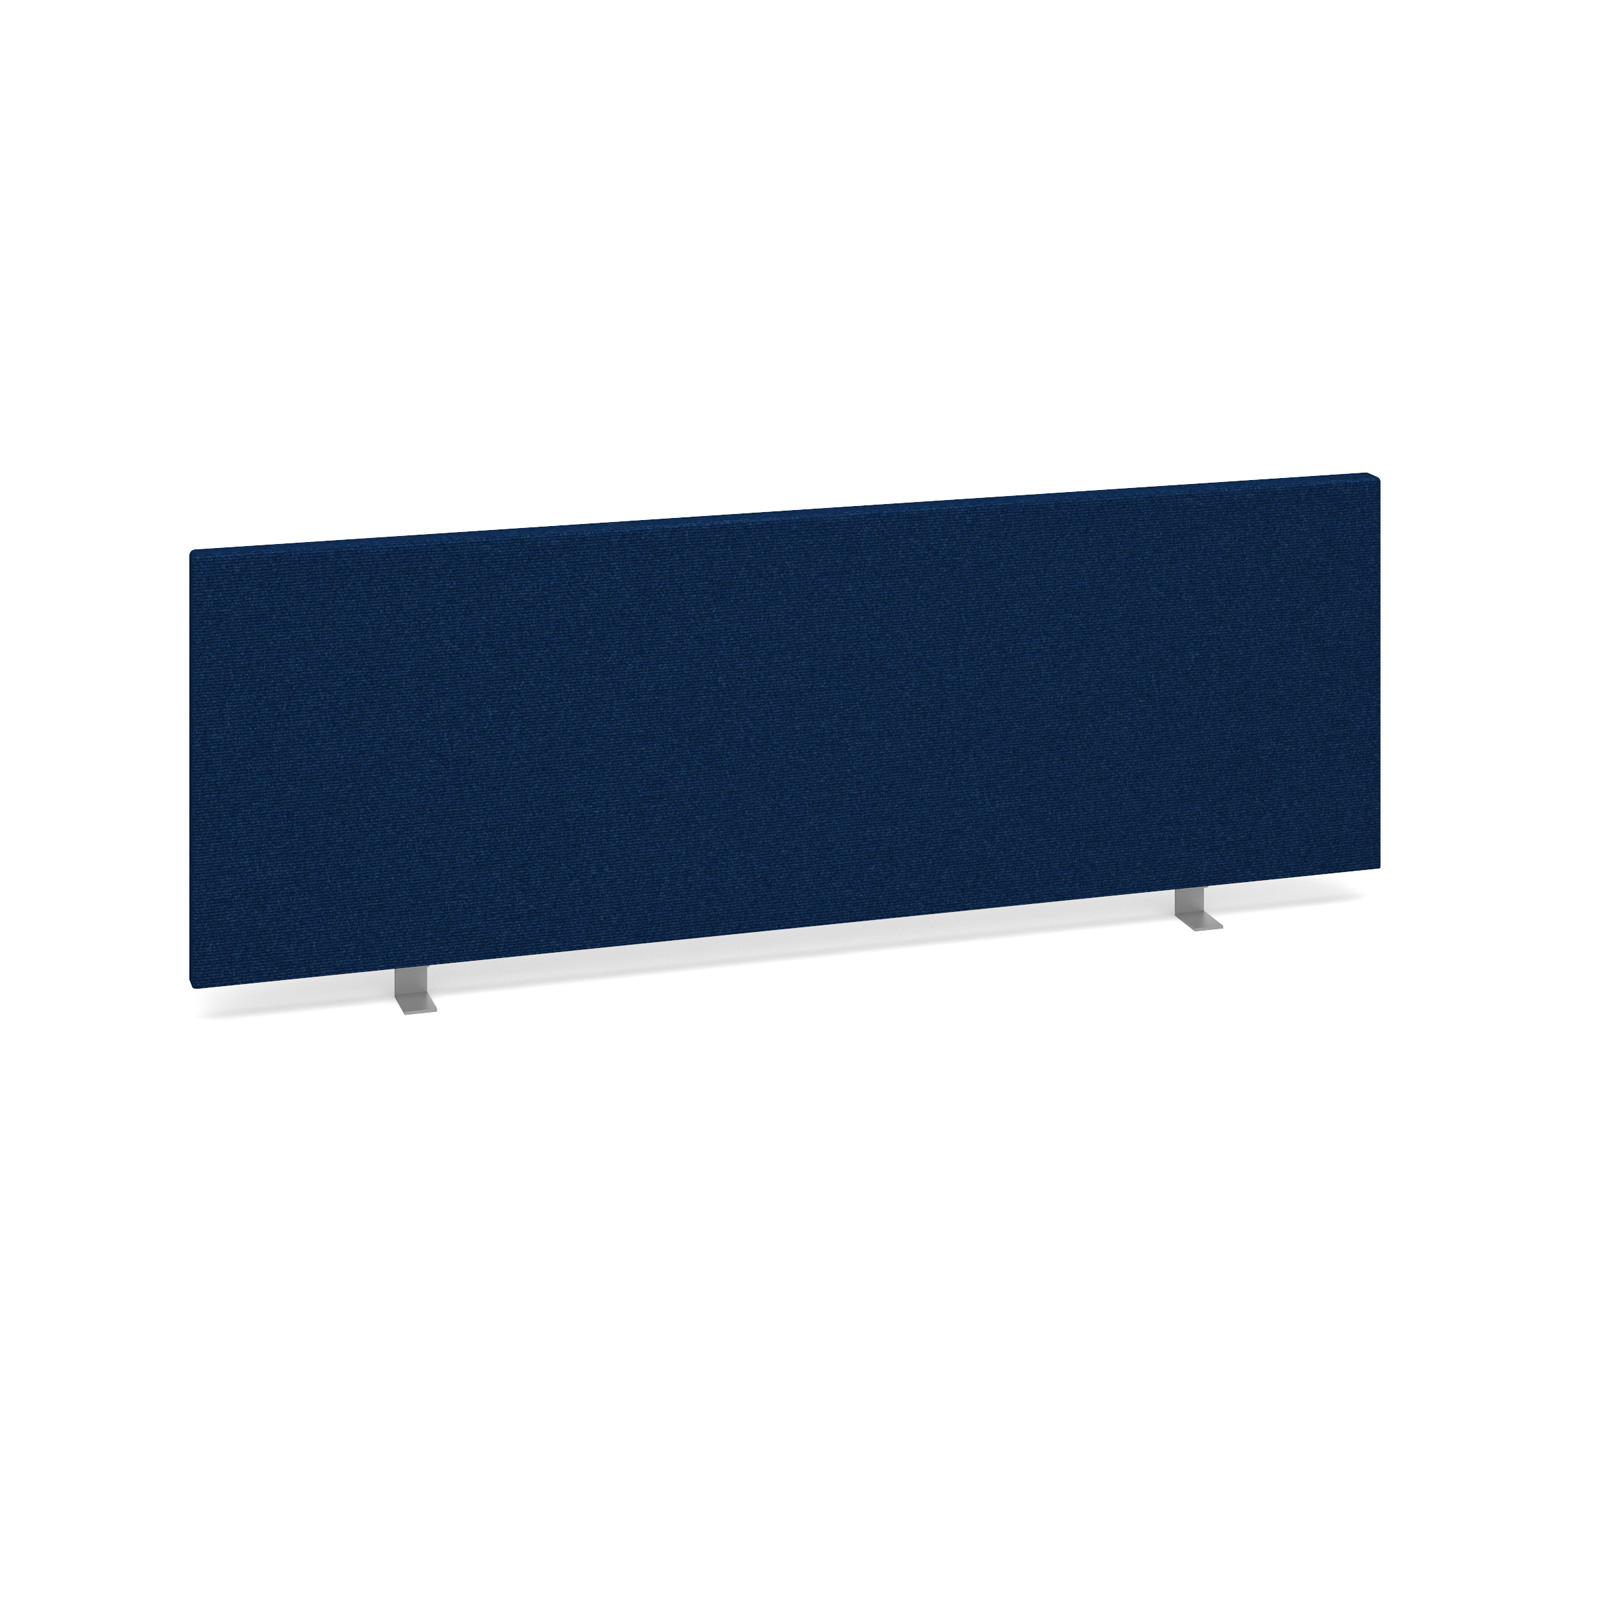 Straight Tops Straight desktop fabric screen 1200mm x 400mm - blue